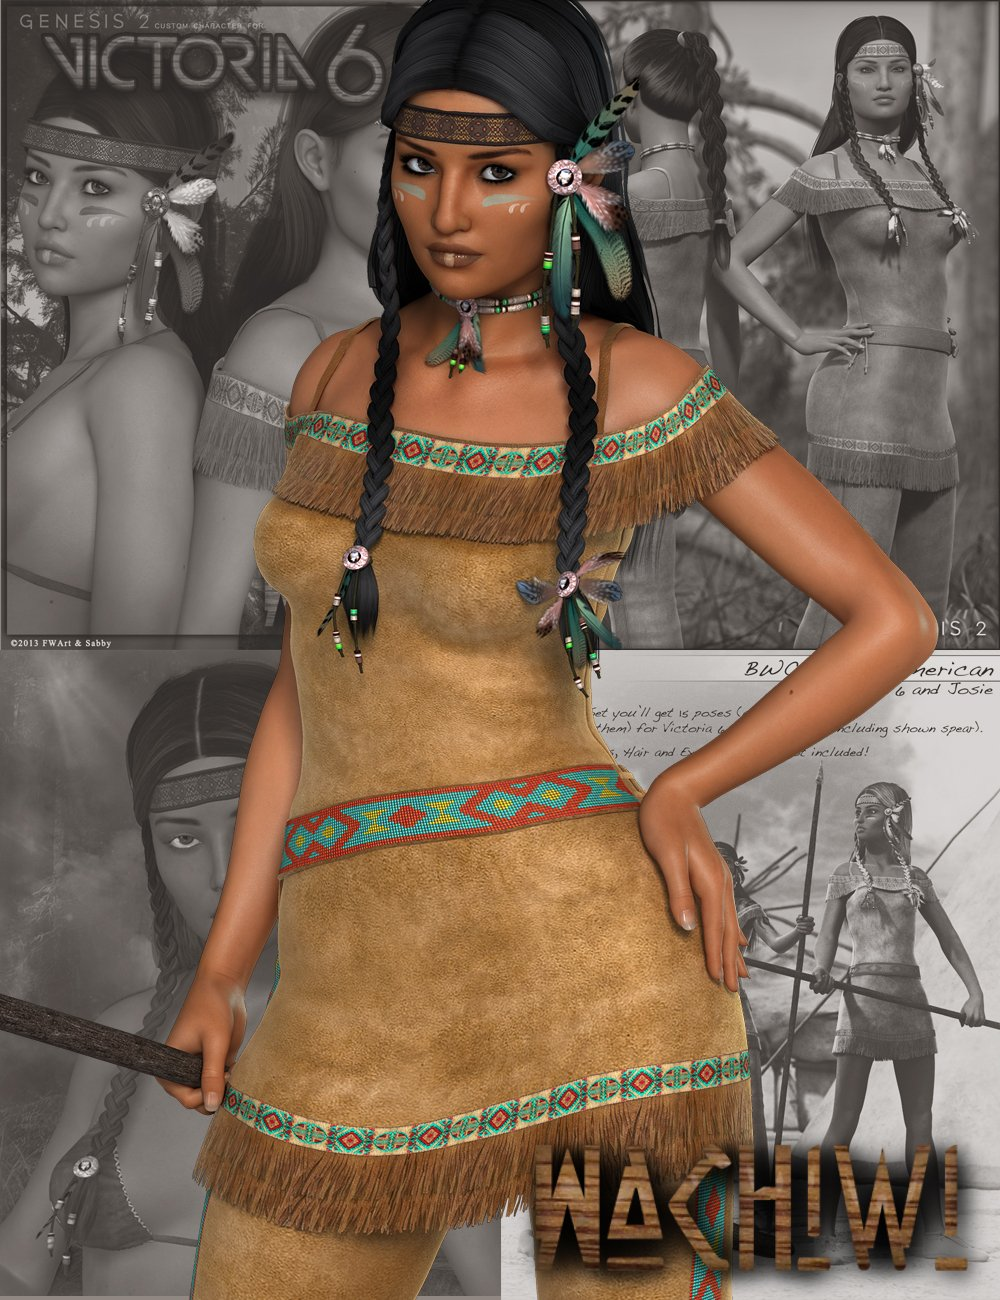 Wachiwi - Native American Character, Outfit, Hair and Poses Bundle by: SWAMSabbyFred Winkler ArtFisty & DarcSedor, 3D Models by Daz 3D